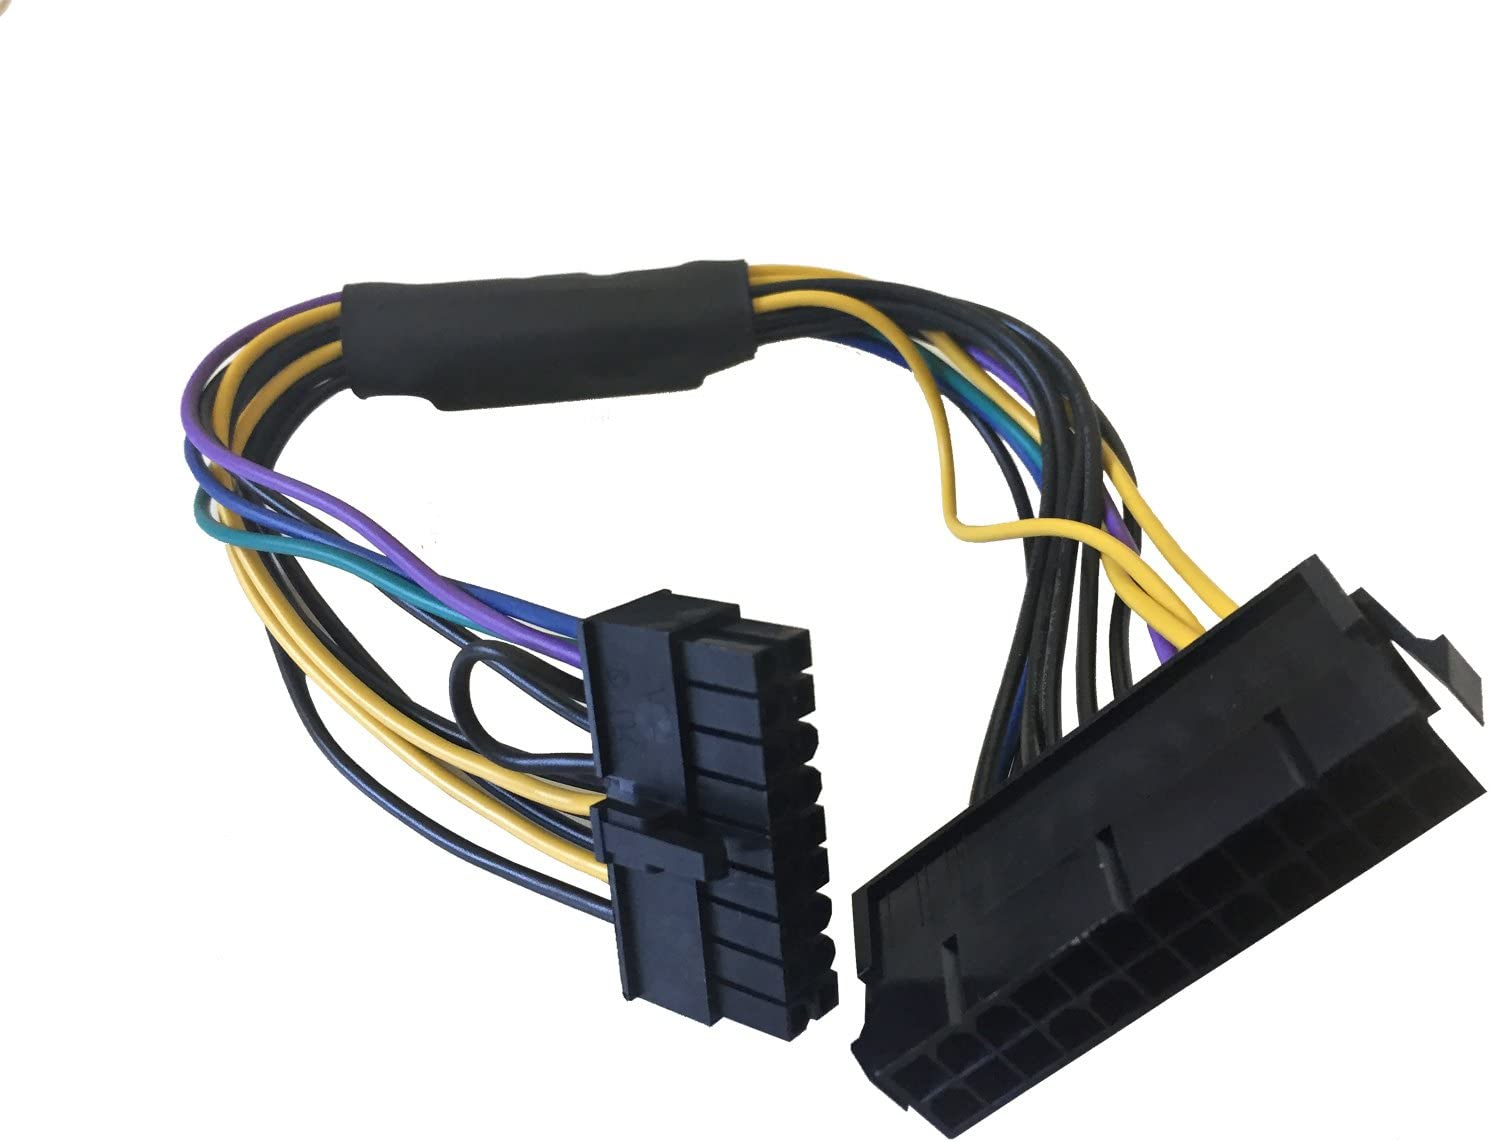 AYA 11-inch 24-Pin to 18-Pin ATX Power Supply Cable Adapter for HP Z420/Z620 Workstation